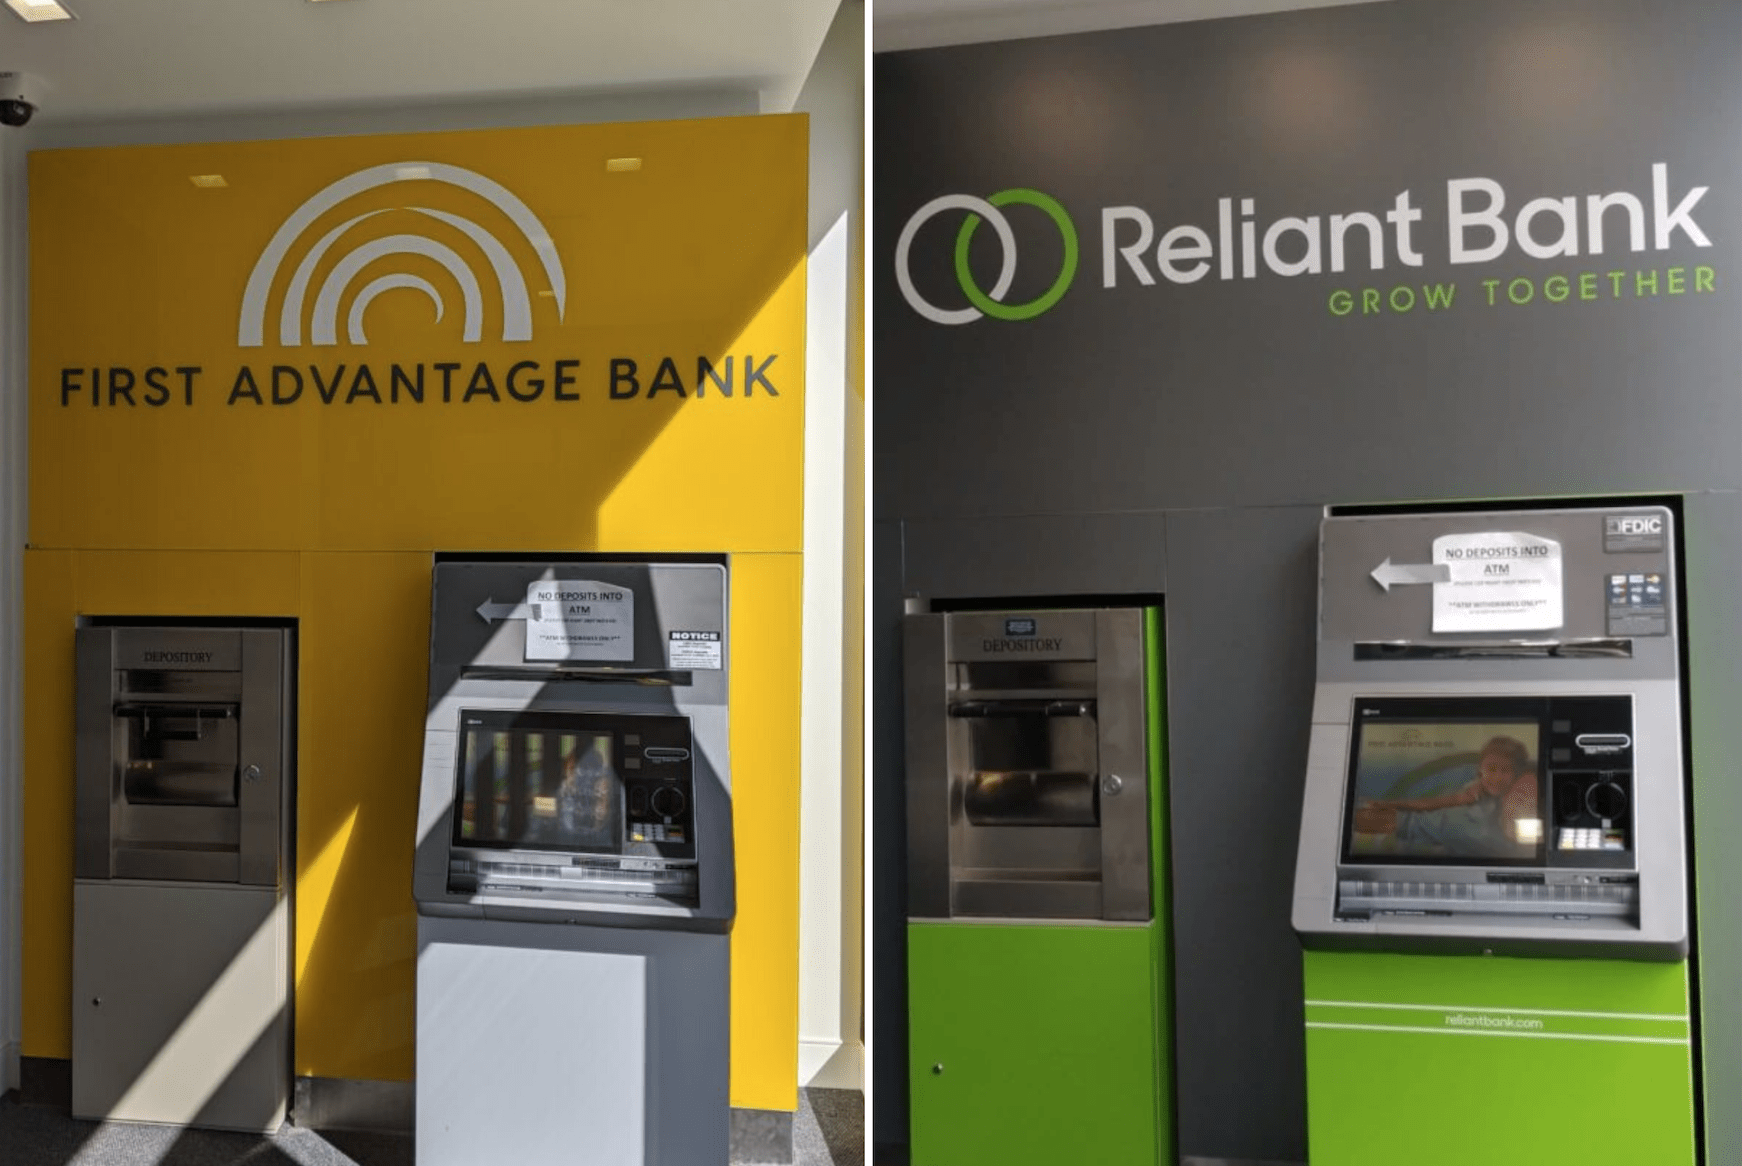 Before & After Of Reliant Bank's Rebrand (Merger)